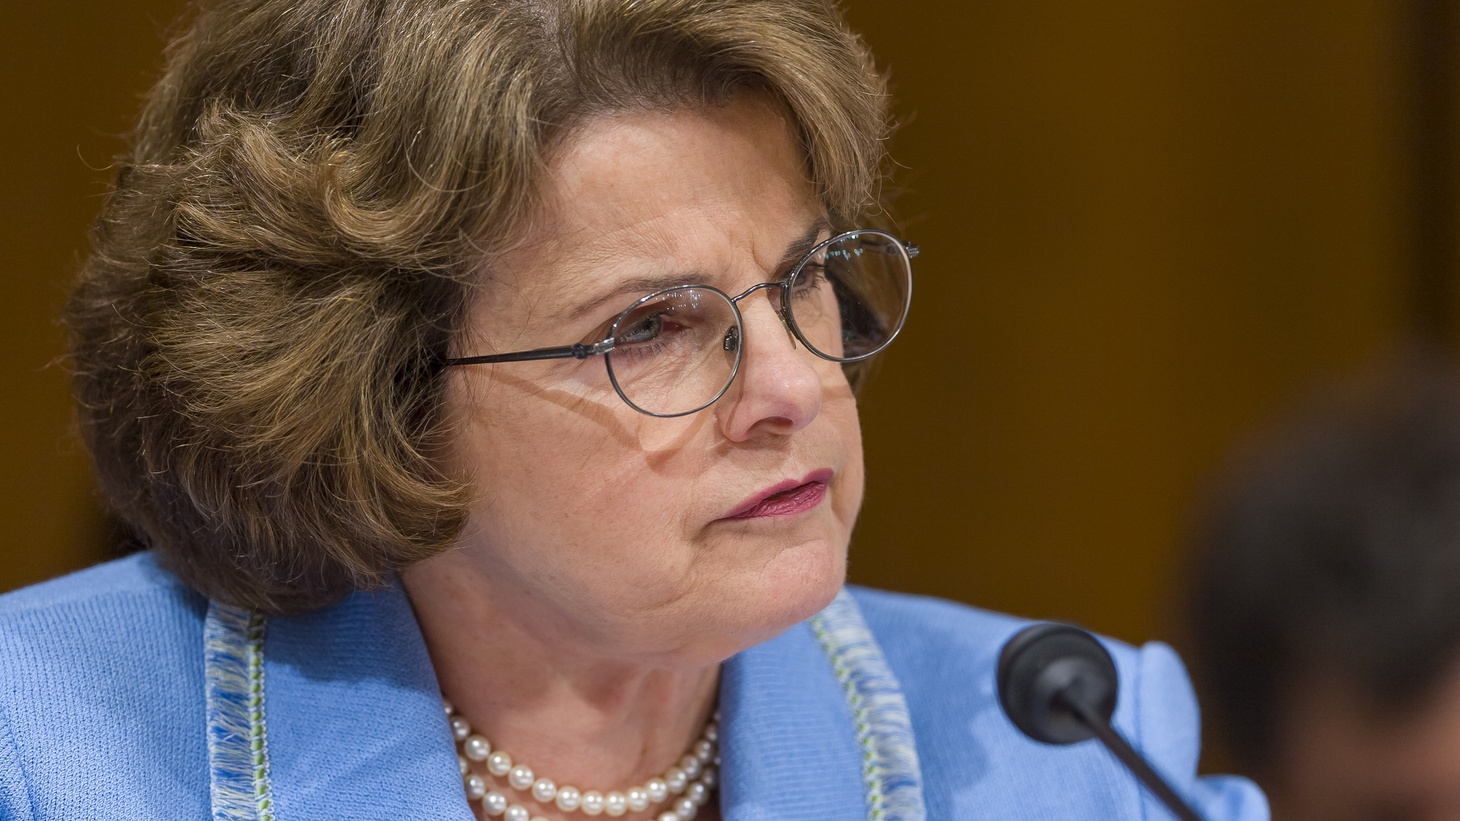 There have been renewed calls for Sen. Dianne Feinstein to step down because if she retires or dies under a Republican governor in California, it would be disastrous for Democrats' foothold in the U.S. Senate. But Columnist Joe Matthews says don't hold your breath because Feinstein's San Franciscan stubbornness will keep her from hanging up the hat.